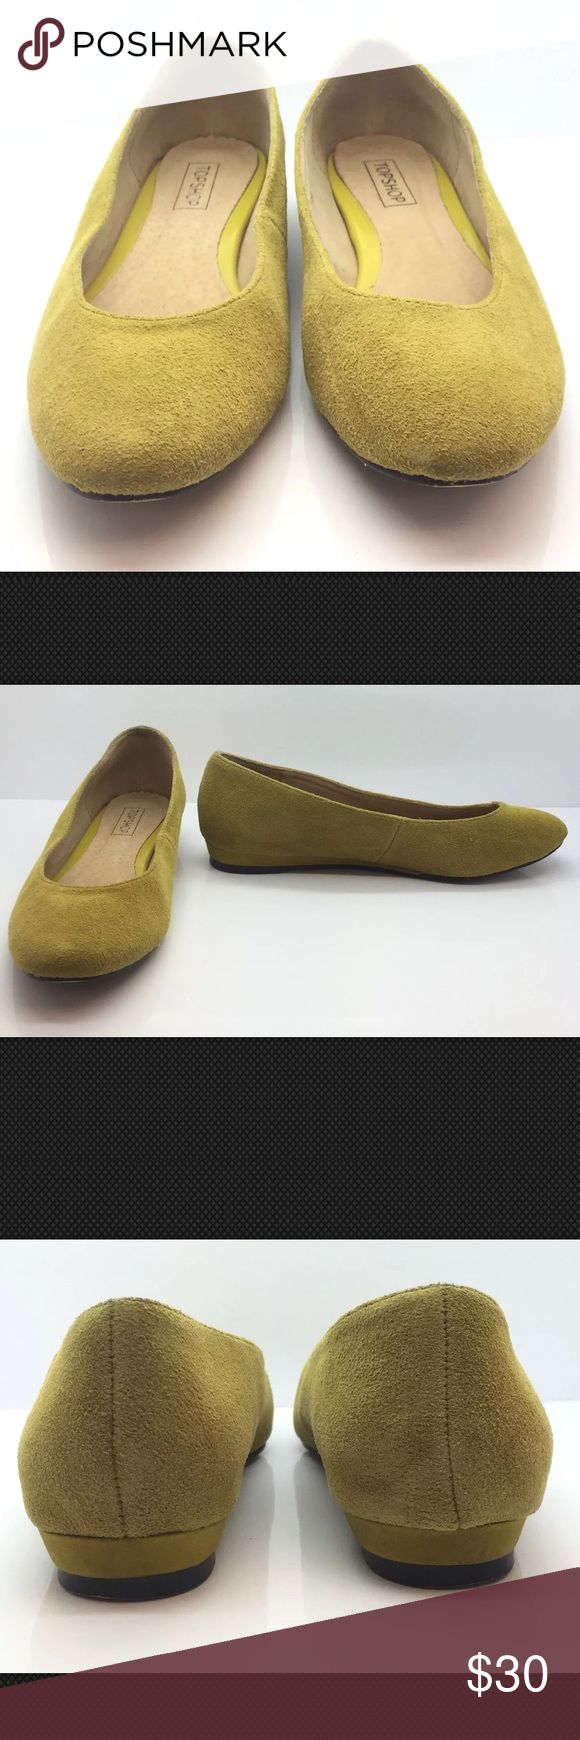 TOPSHOP Yellow Suede European Ballet Flats 7M Cute TOPSHOP Yellow Suede European Comfort Ballet Flats Woman's 37EU 7M Cute!!!  Cute TOPSHOP Flats In good preowned condition please see photos. Comes from a pet and smoke free home. Topshop Shoes Flats & Loafers